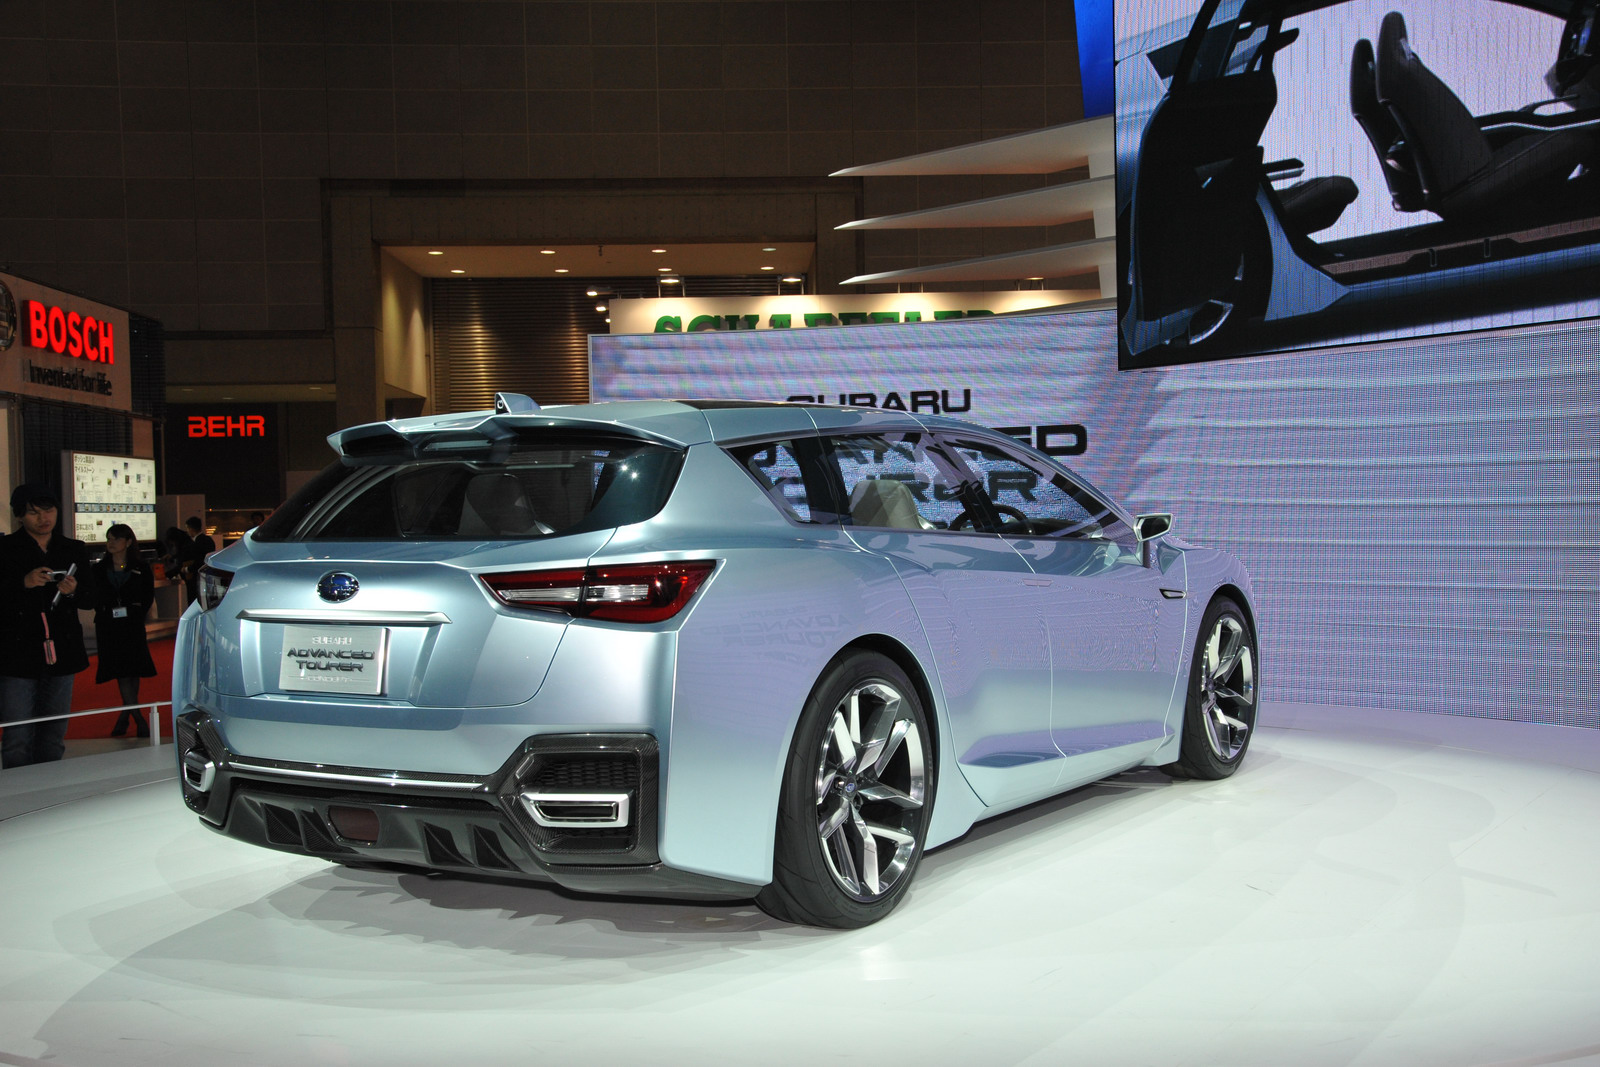 2019 Subaru Advanced Tourer Concept photo - 1